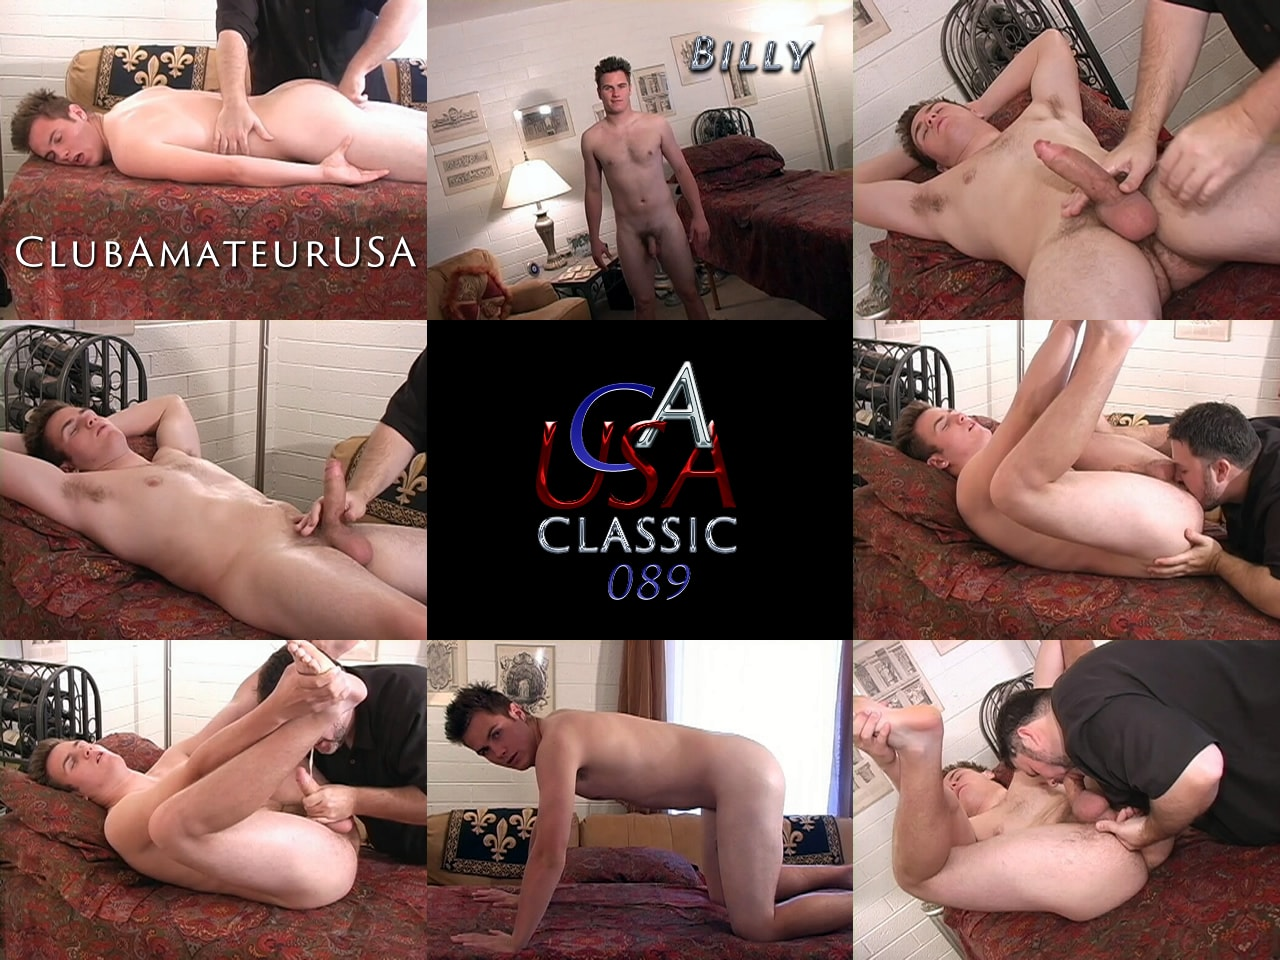 Download or Stream Classic CAUSA 089 Billy - Click Here Now